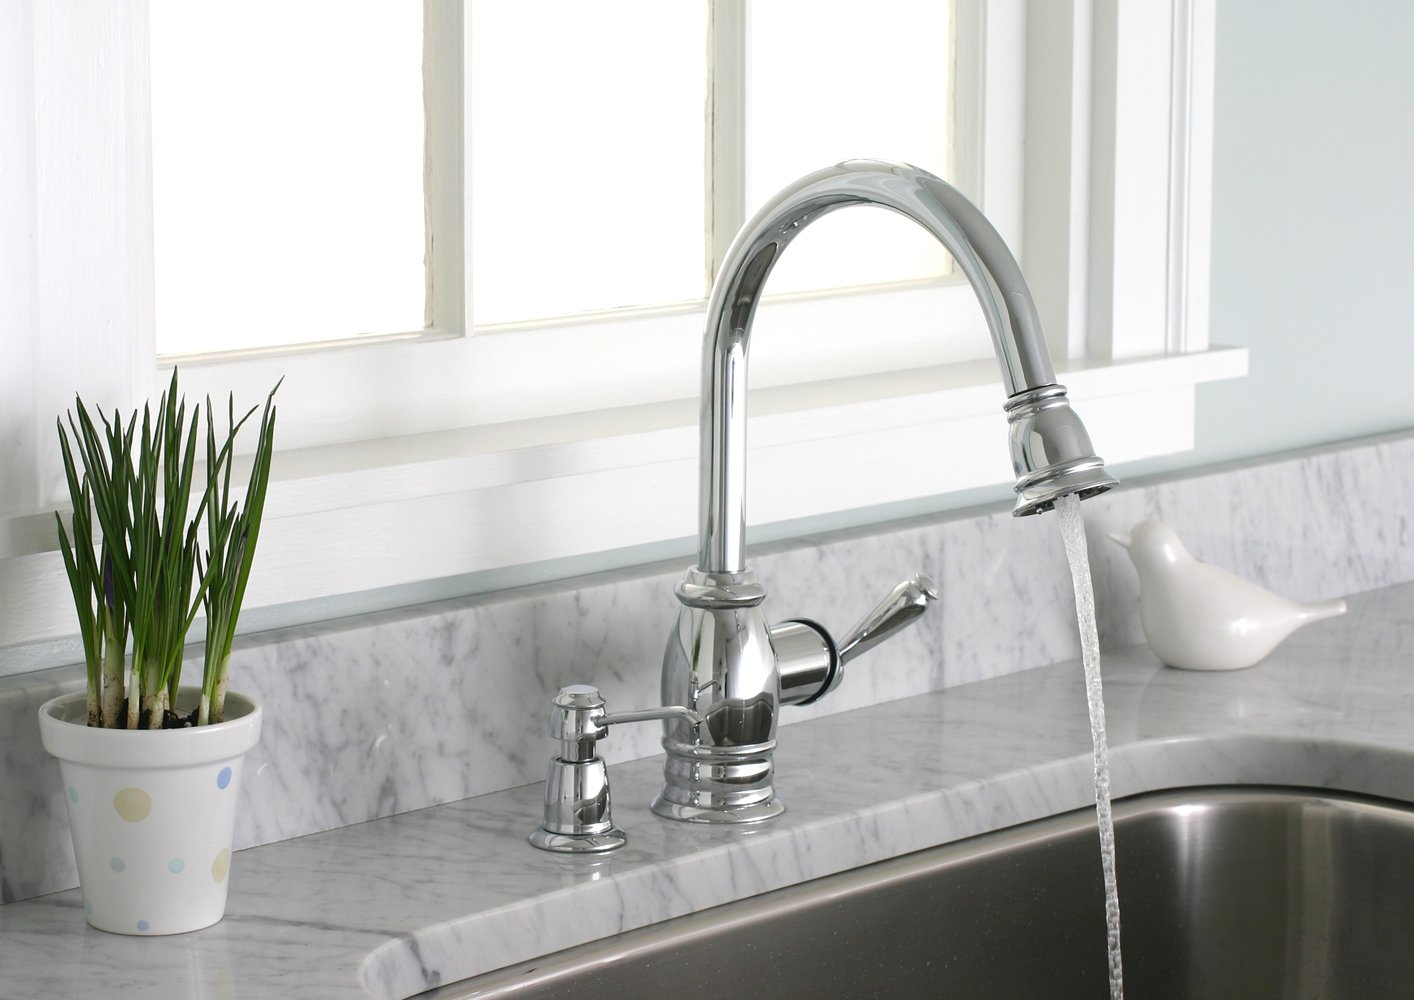 Lovely Premier 120110LF Sonoma Lead Free Pull Down Kitchen Faucet With Matching  Soap Dispenser, Chrome   Touch On Kitchen Sink Faucets   Amazon.com